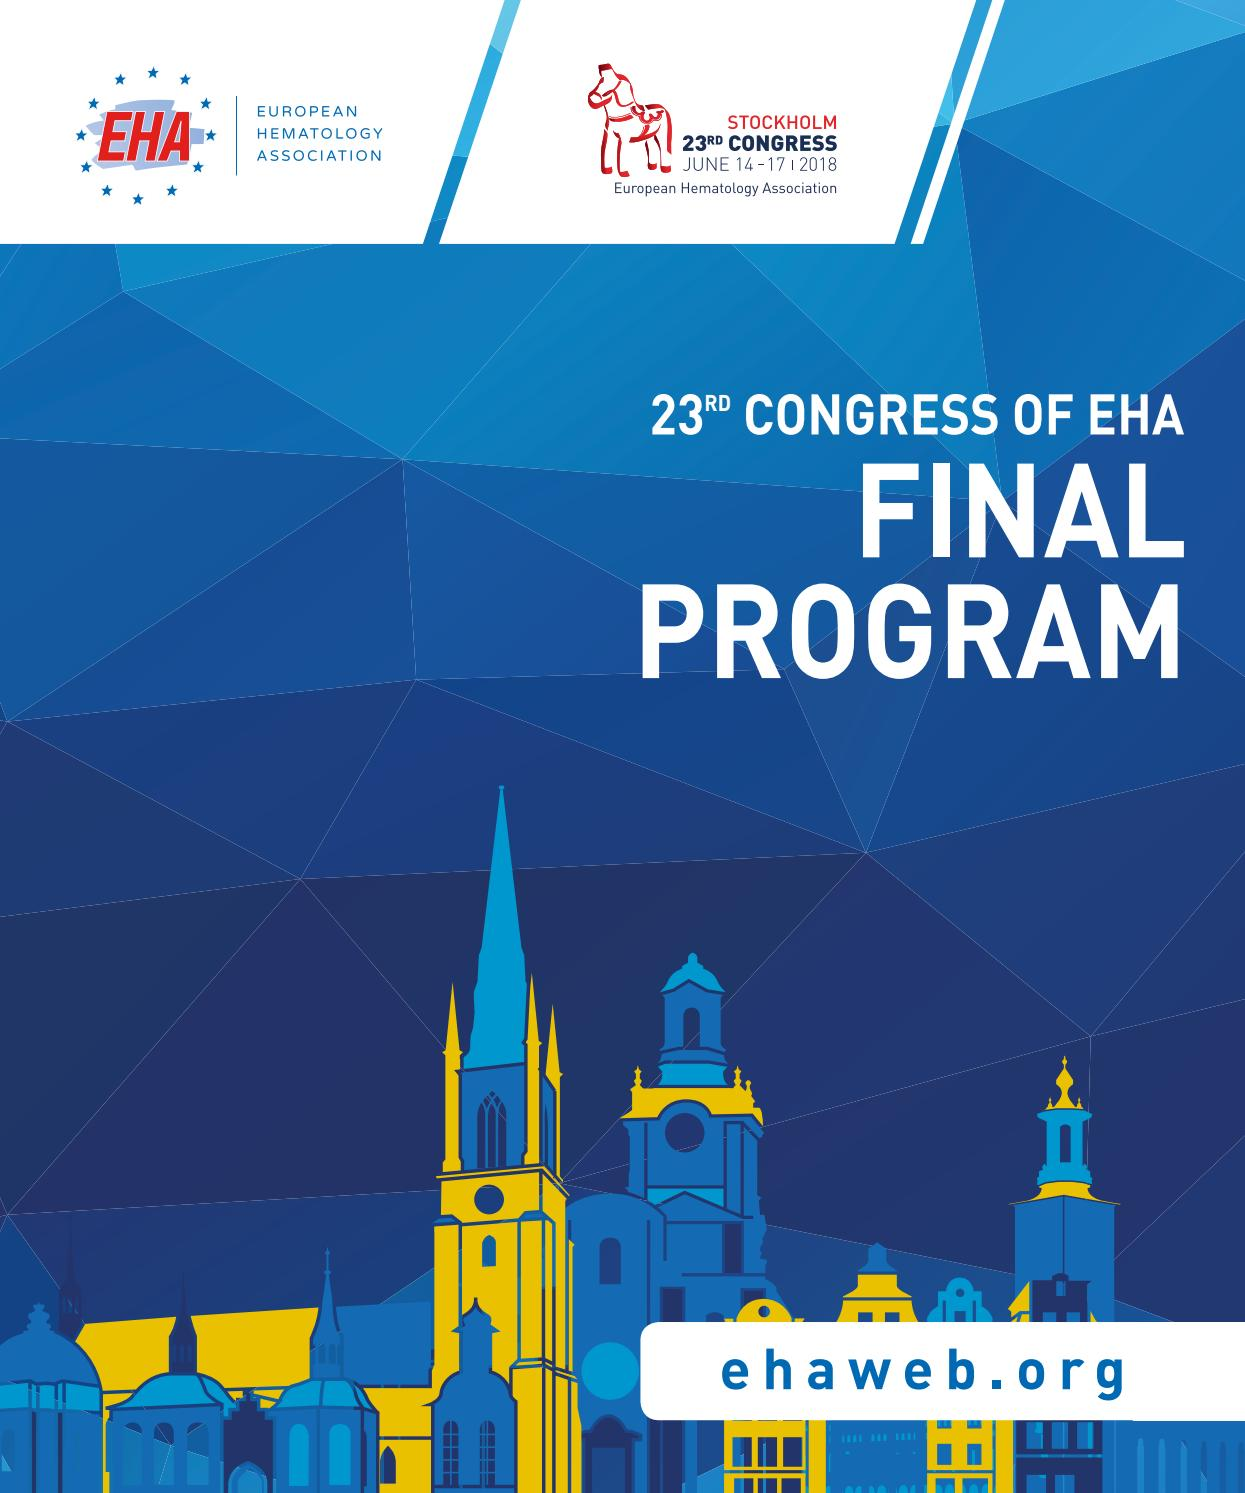 23rd Congress of EHA Final Program by Loyals - issuu